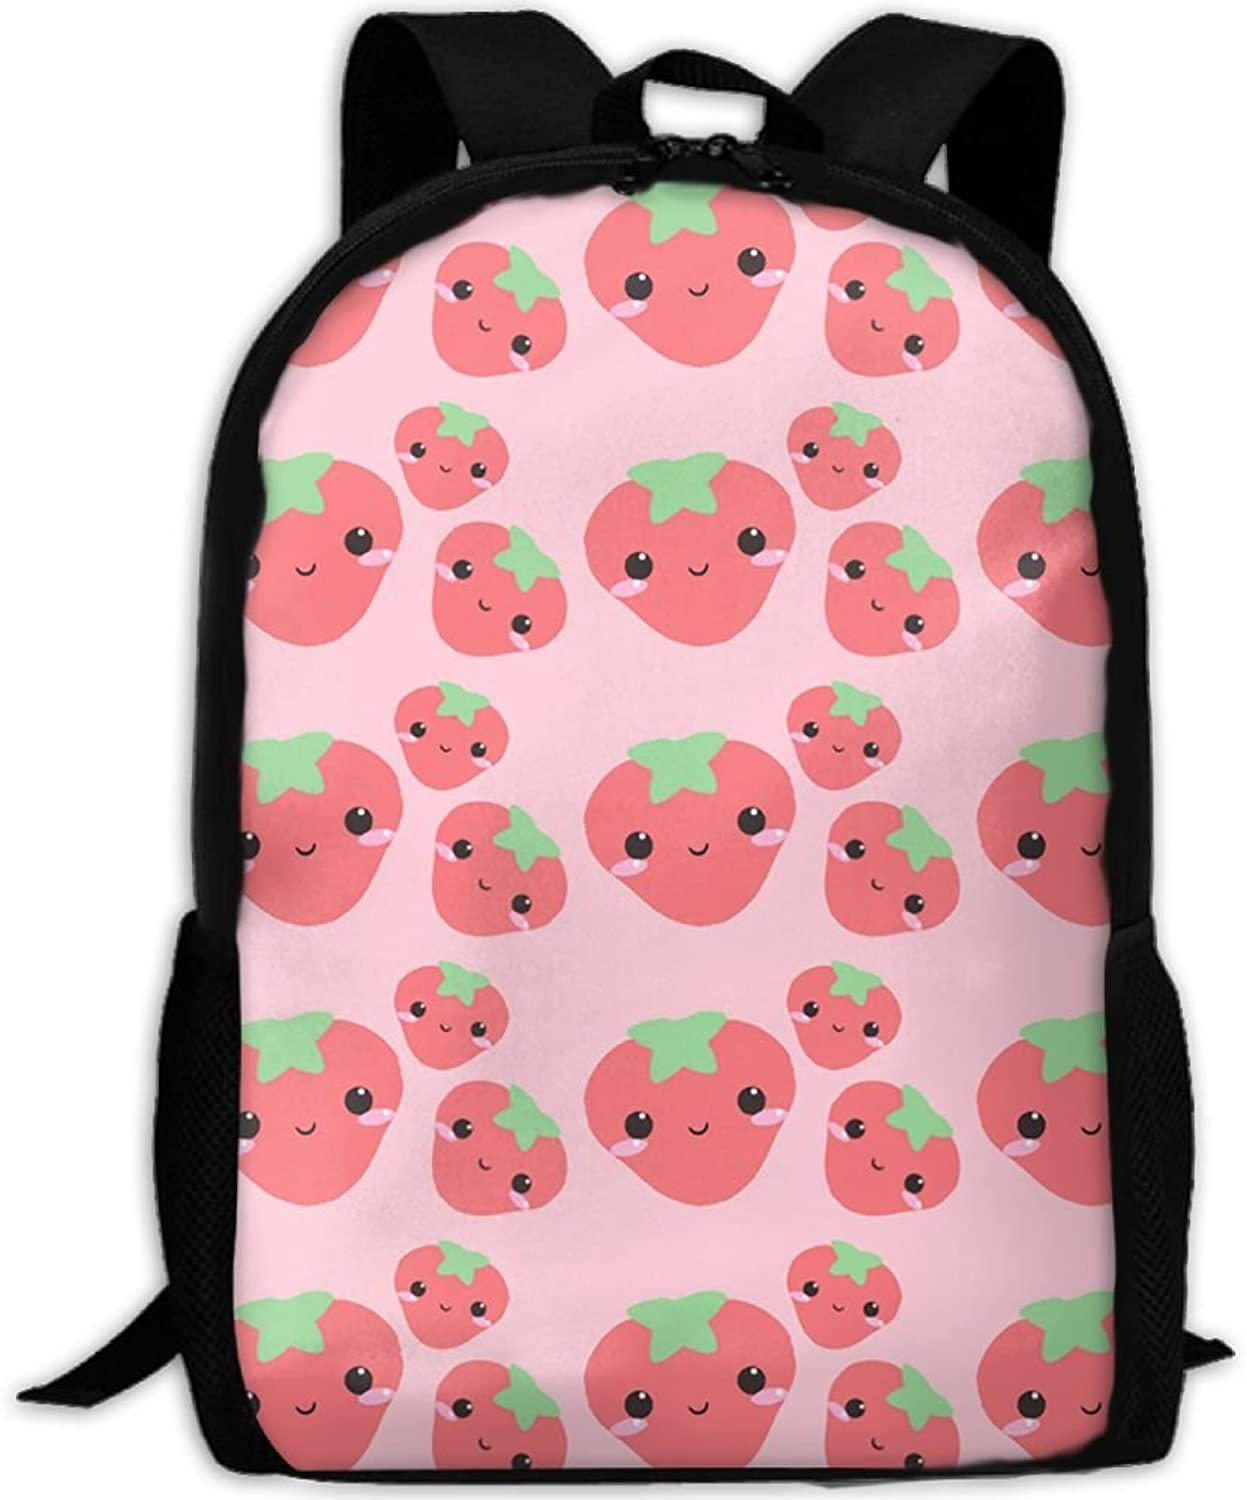 Adult Backpack Kawaii Strawberry College Daypack Oxford Bag Unisex Business Travel Sports Bag with Adjustable Strap